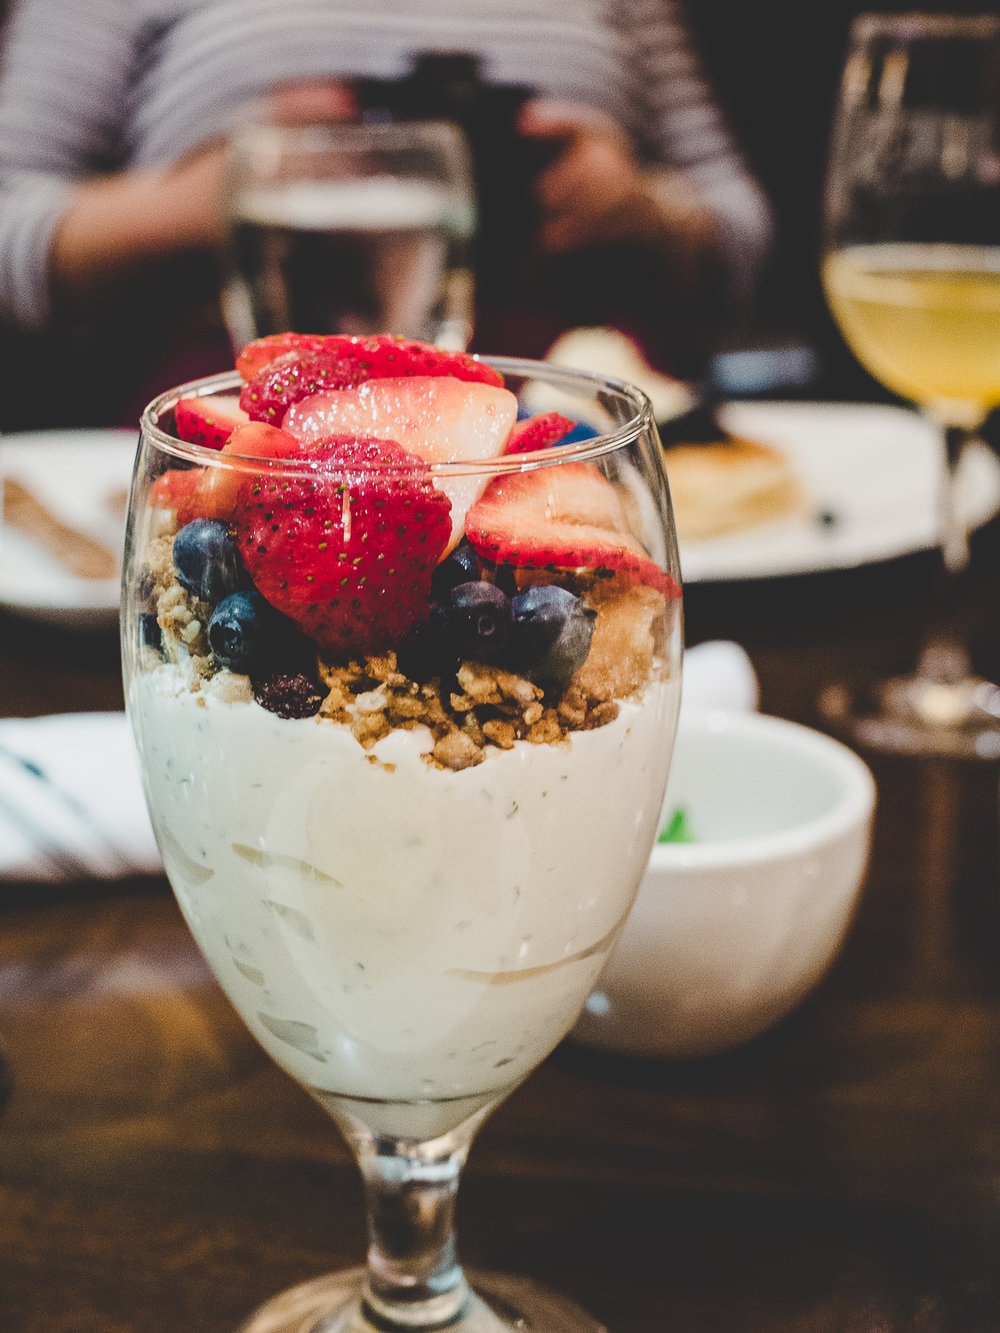 Granola, Yogurt & Seasonal Fruit.  Honey-mint yogurt, seasonal fruit, and house granola.